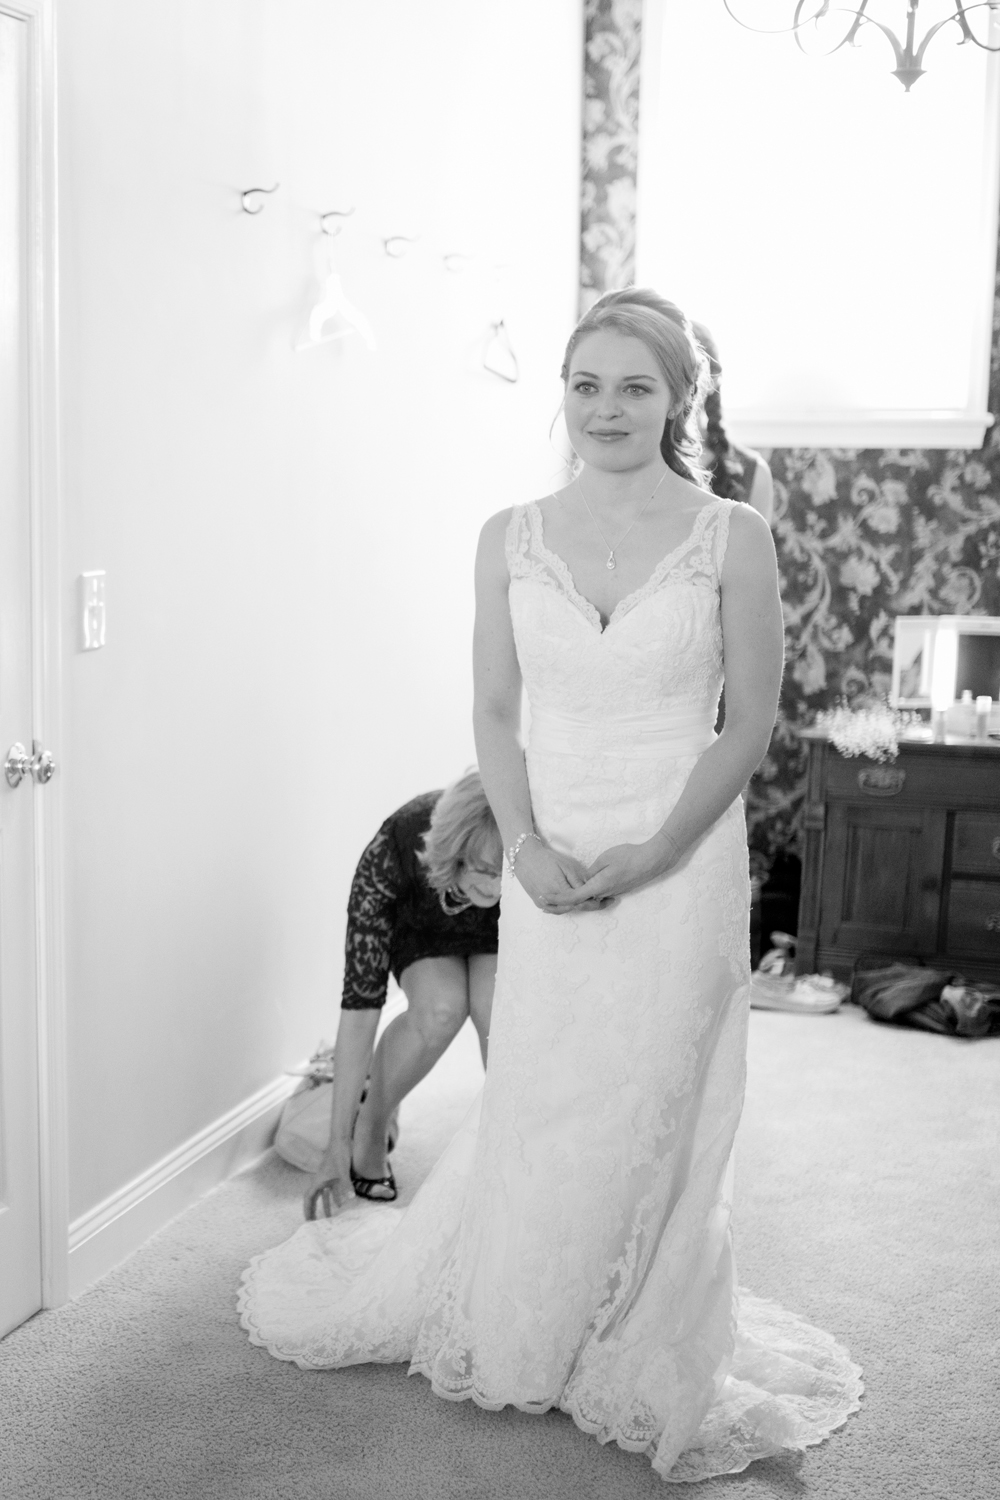 What to Expect During Your Wedding Day